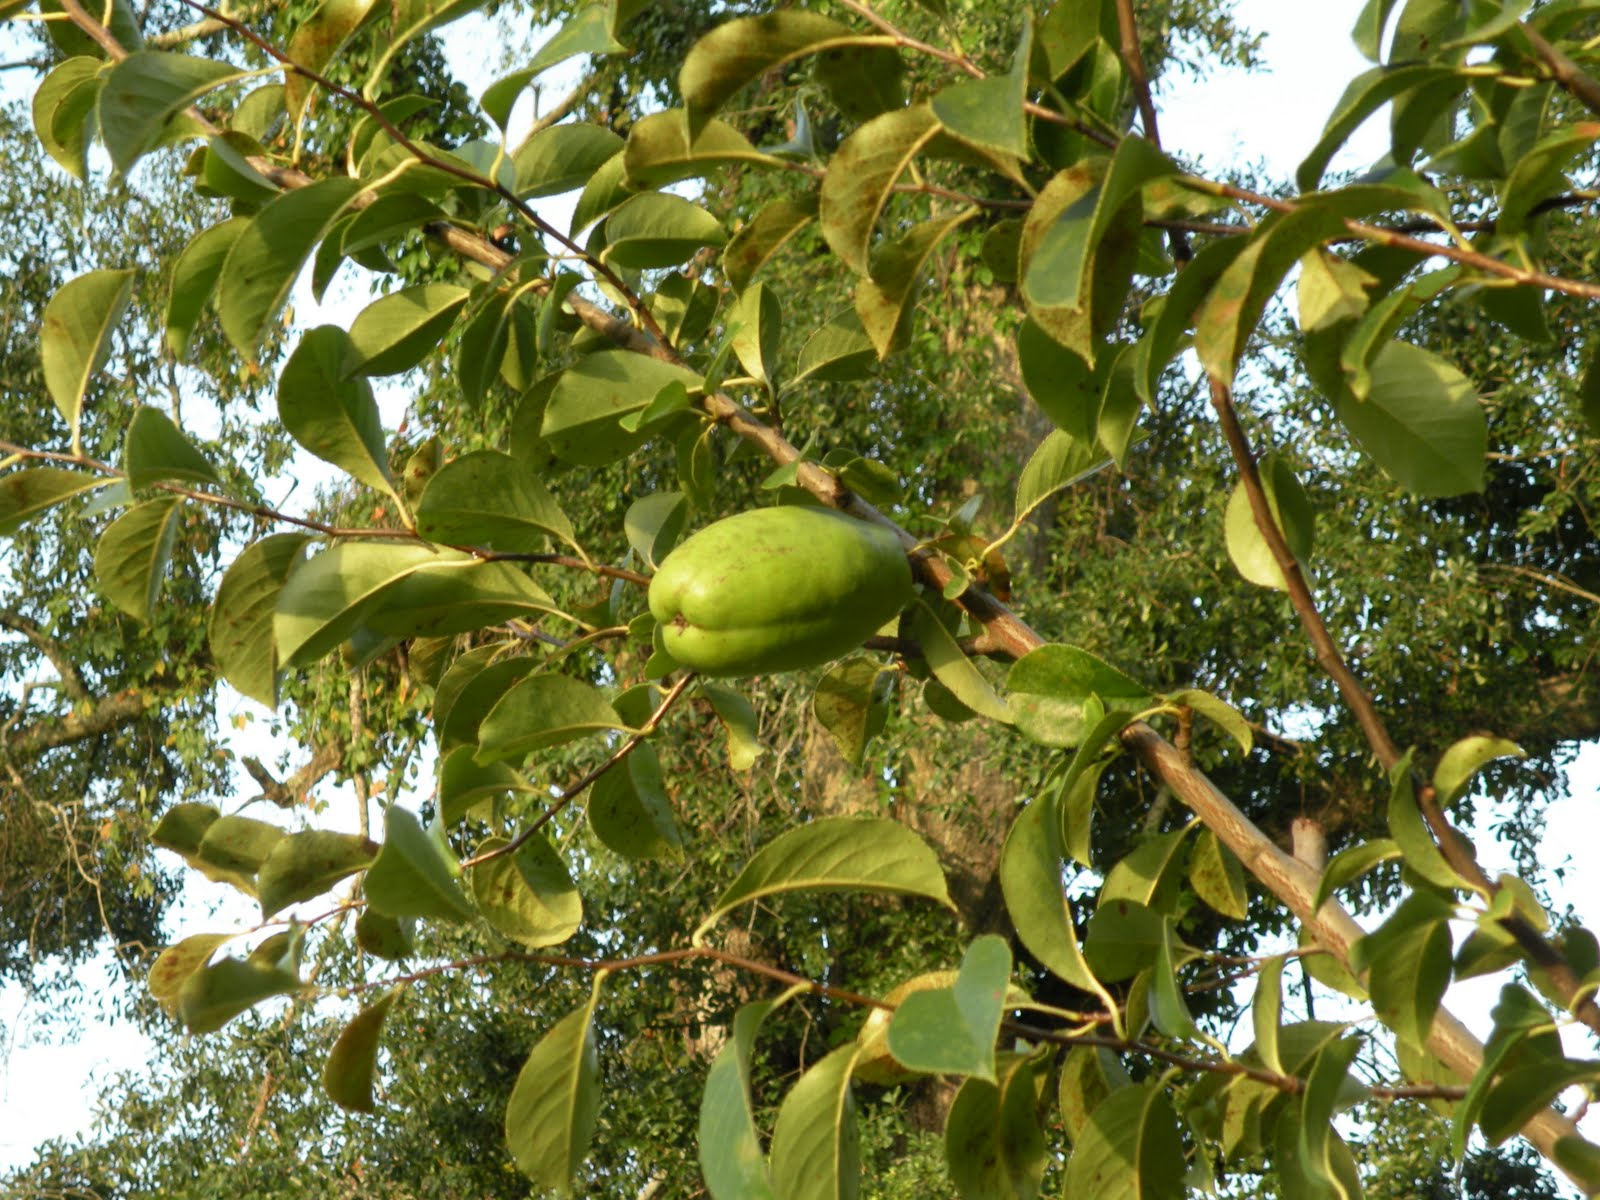 This Is My Dad S Quince Tree With Some Im Fruit On It The Around 4 5 Inches Long They Turn Yellow When Ripe